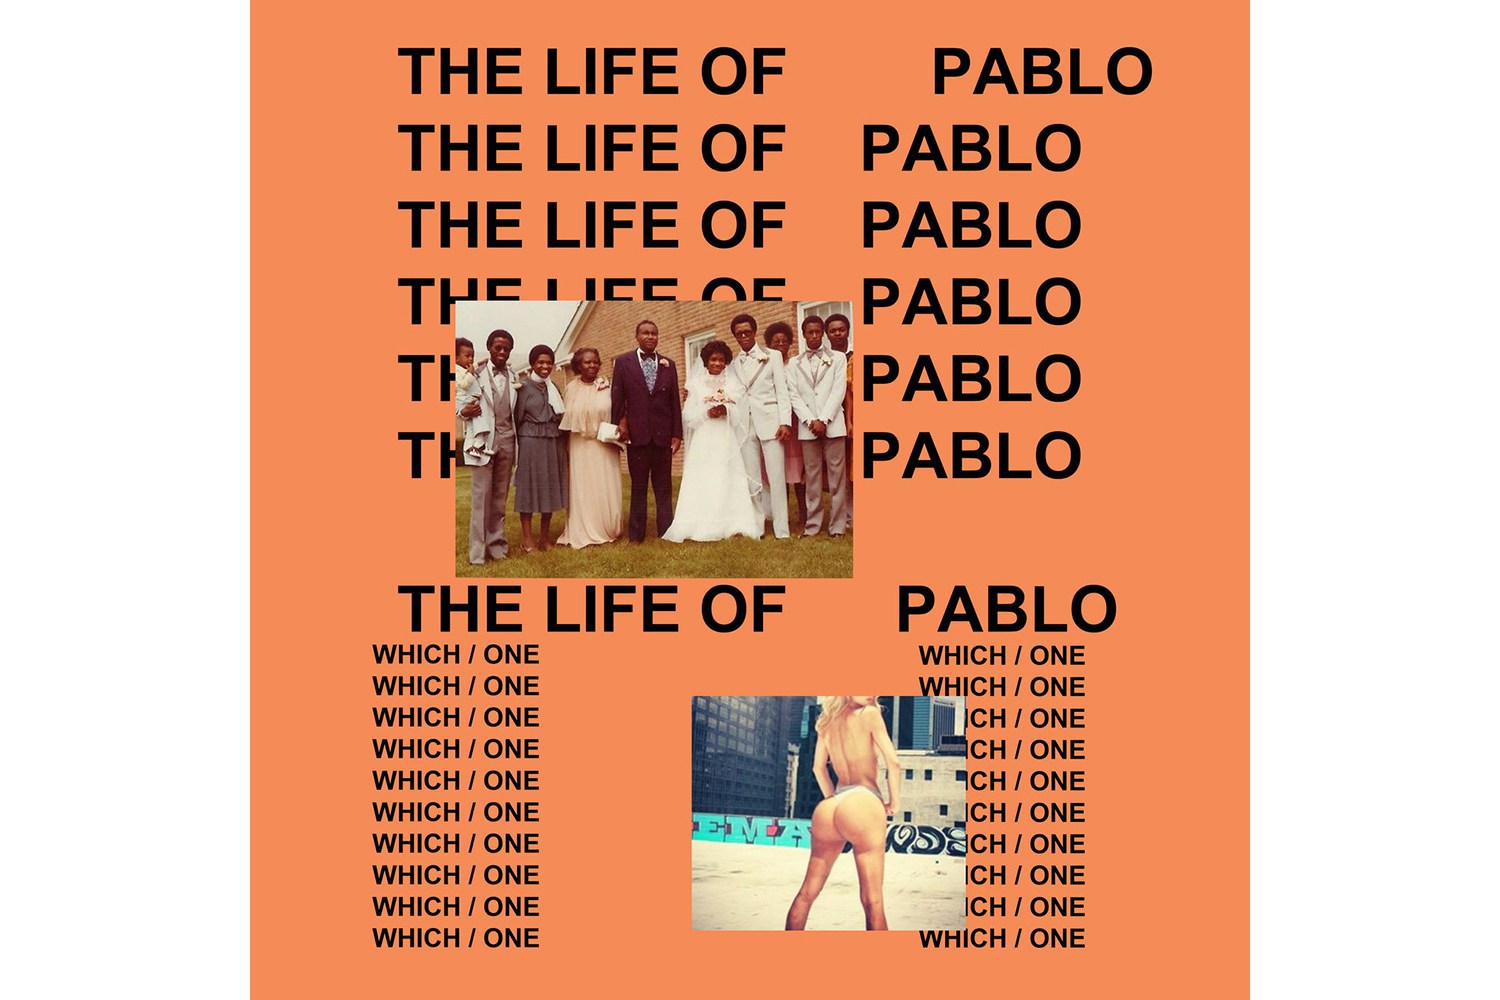 Missing Kanye: Nostalgia and The Life of Pablo